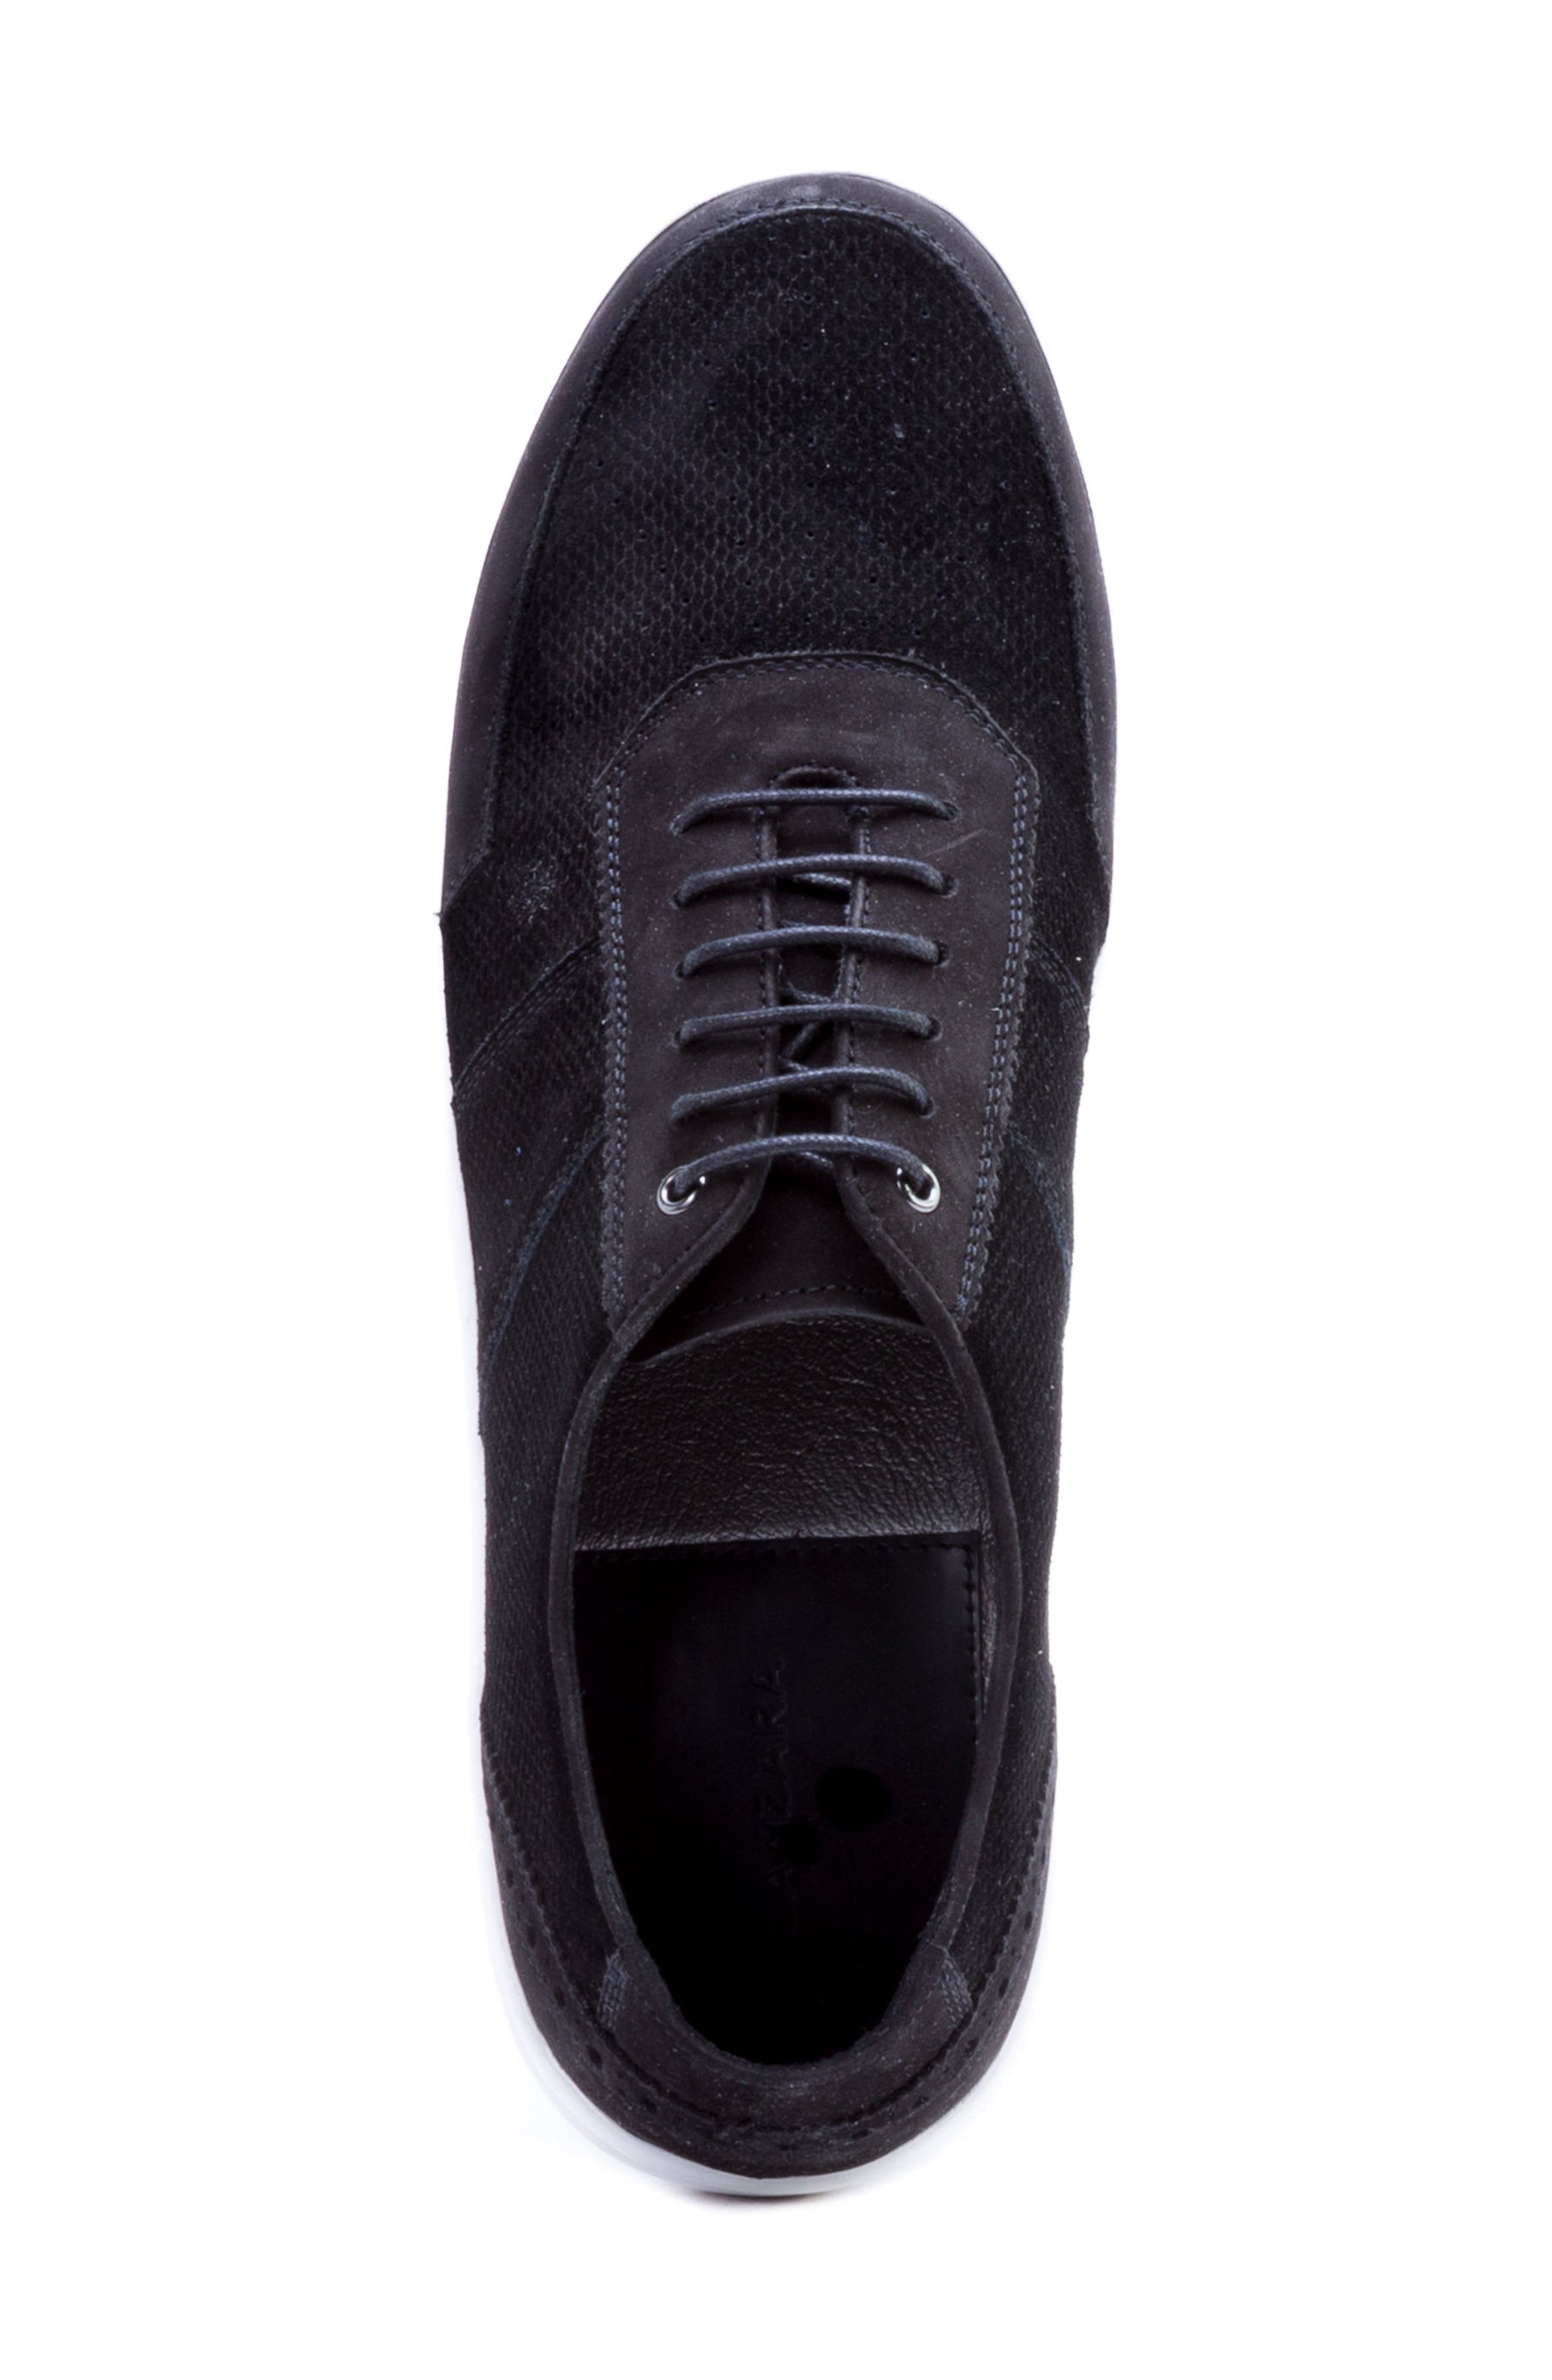 House Low Top Sneaker,                             Alternate thumbnail 5, color,                             BLACK SUEDE/ LEATHER